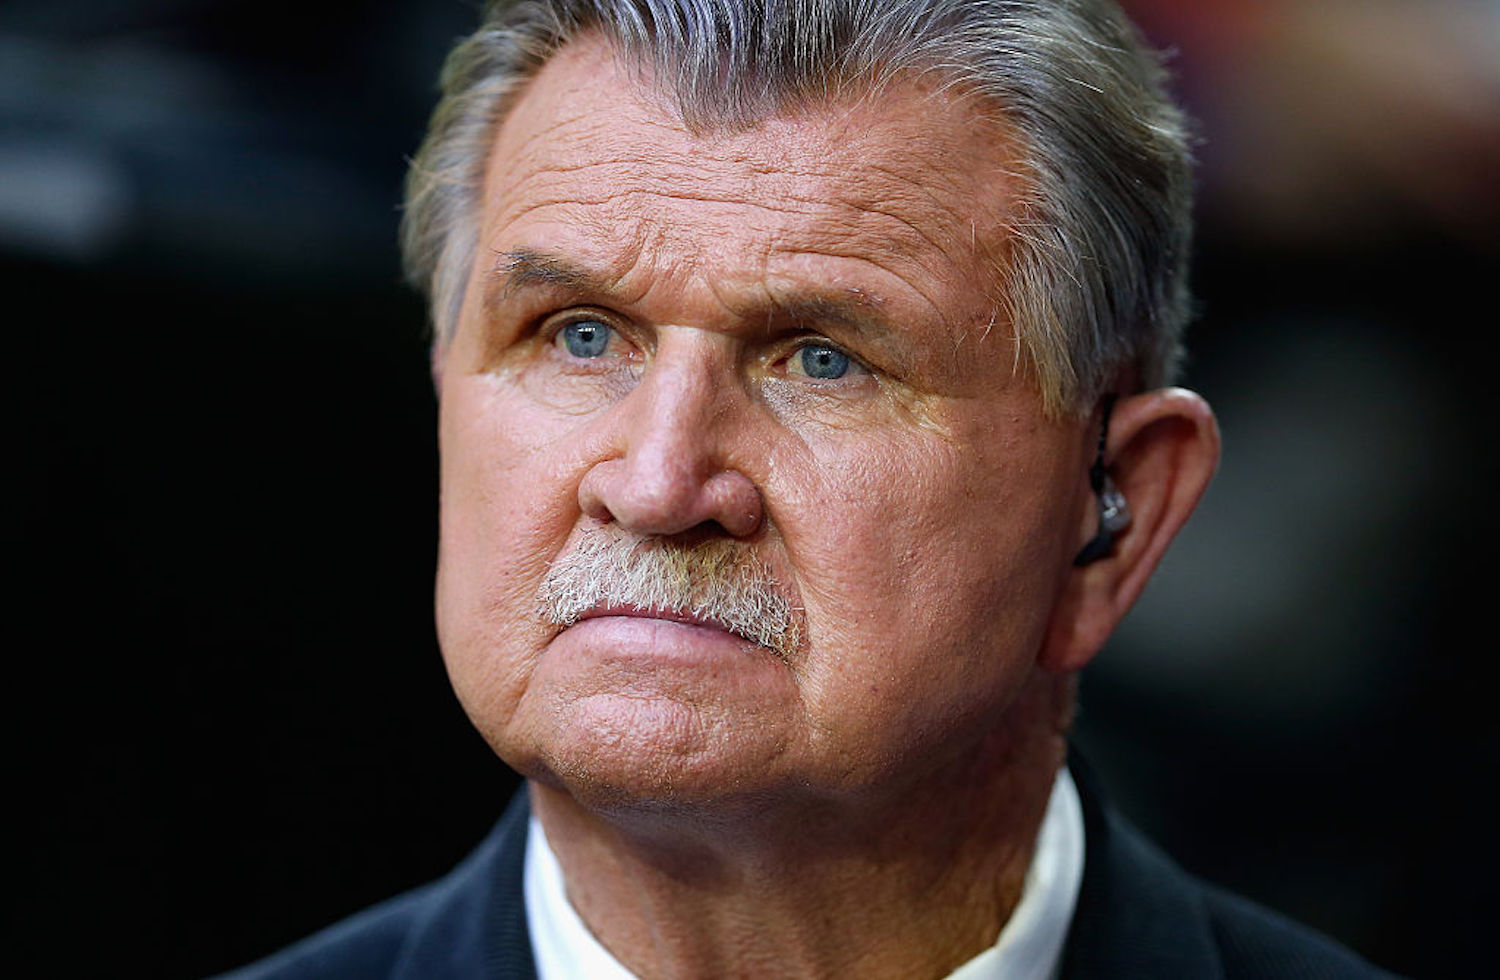 Mike Ditka found himself in hot water for controversial comments on the national anthem protests, and now powerful NFL figures are piling on.